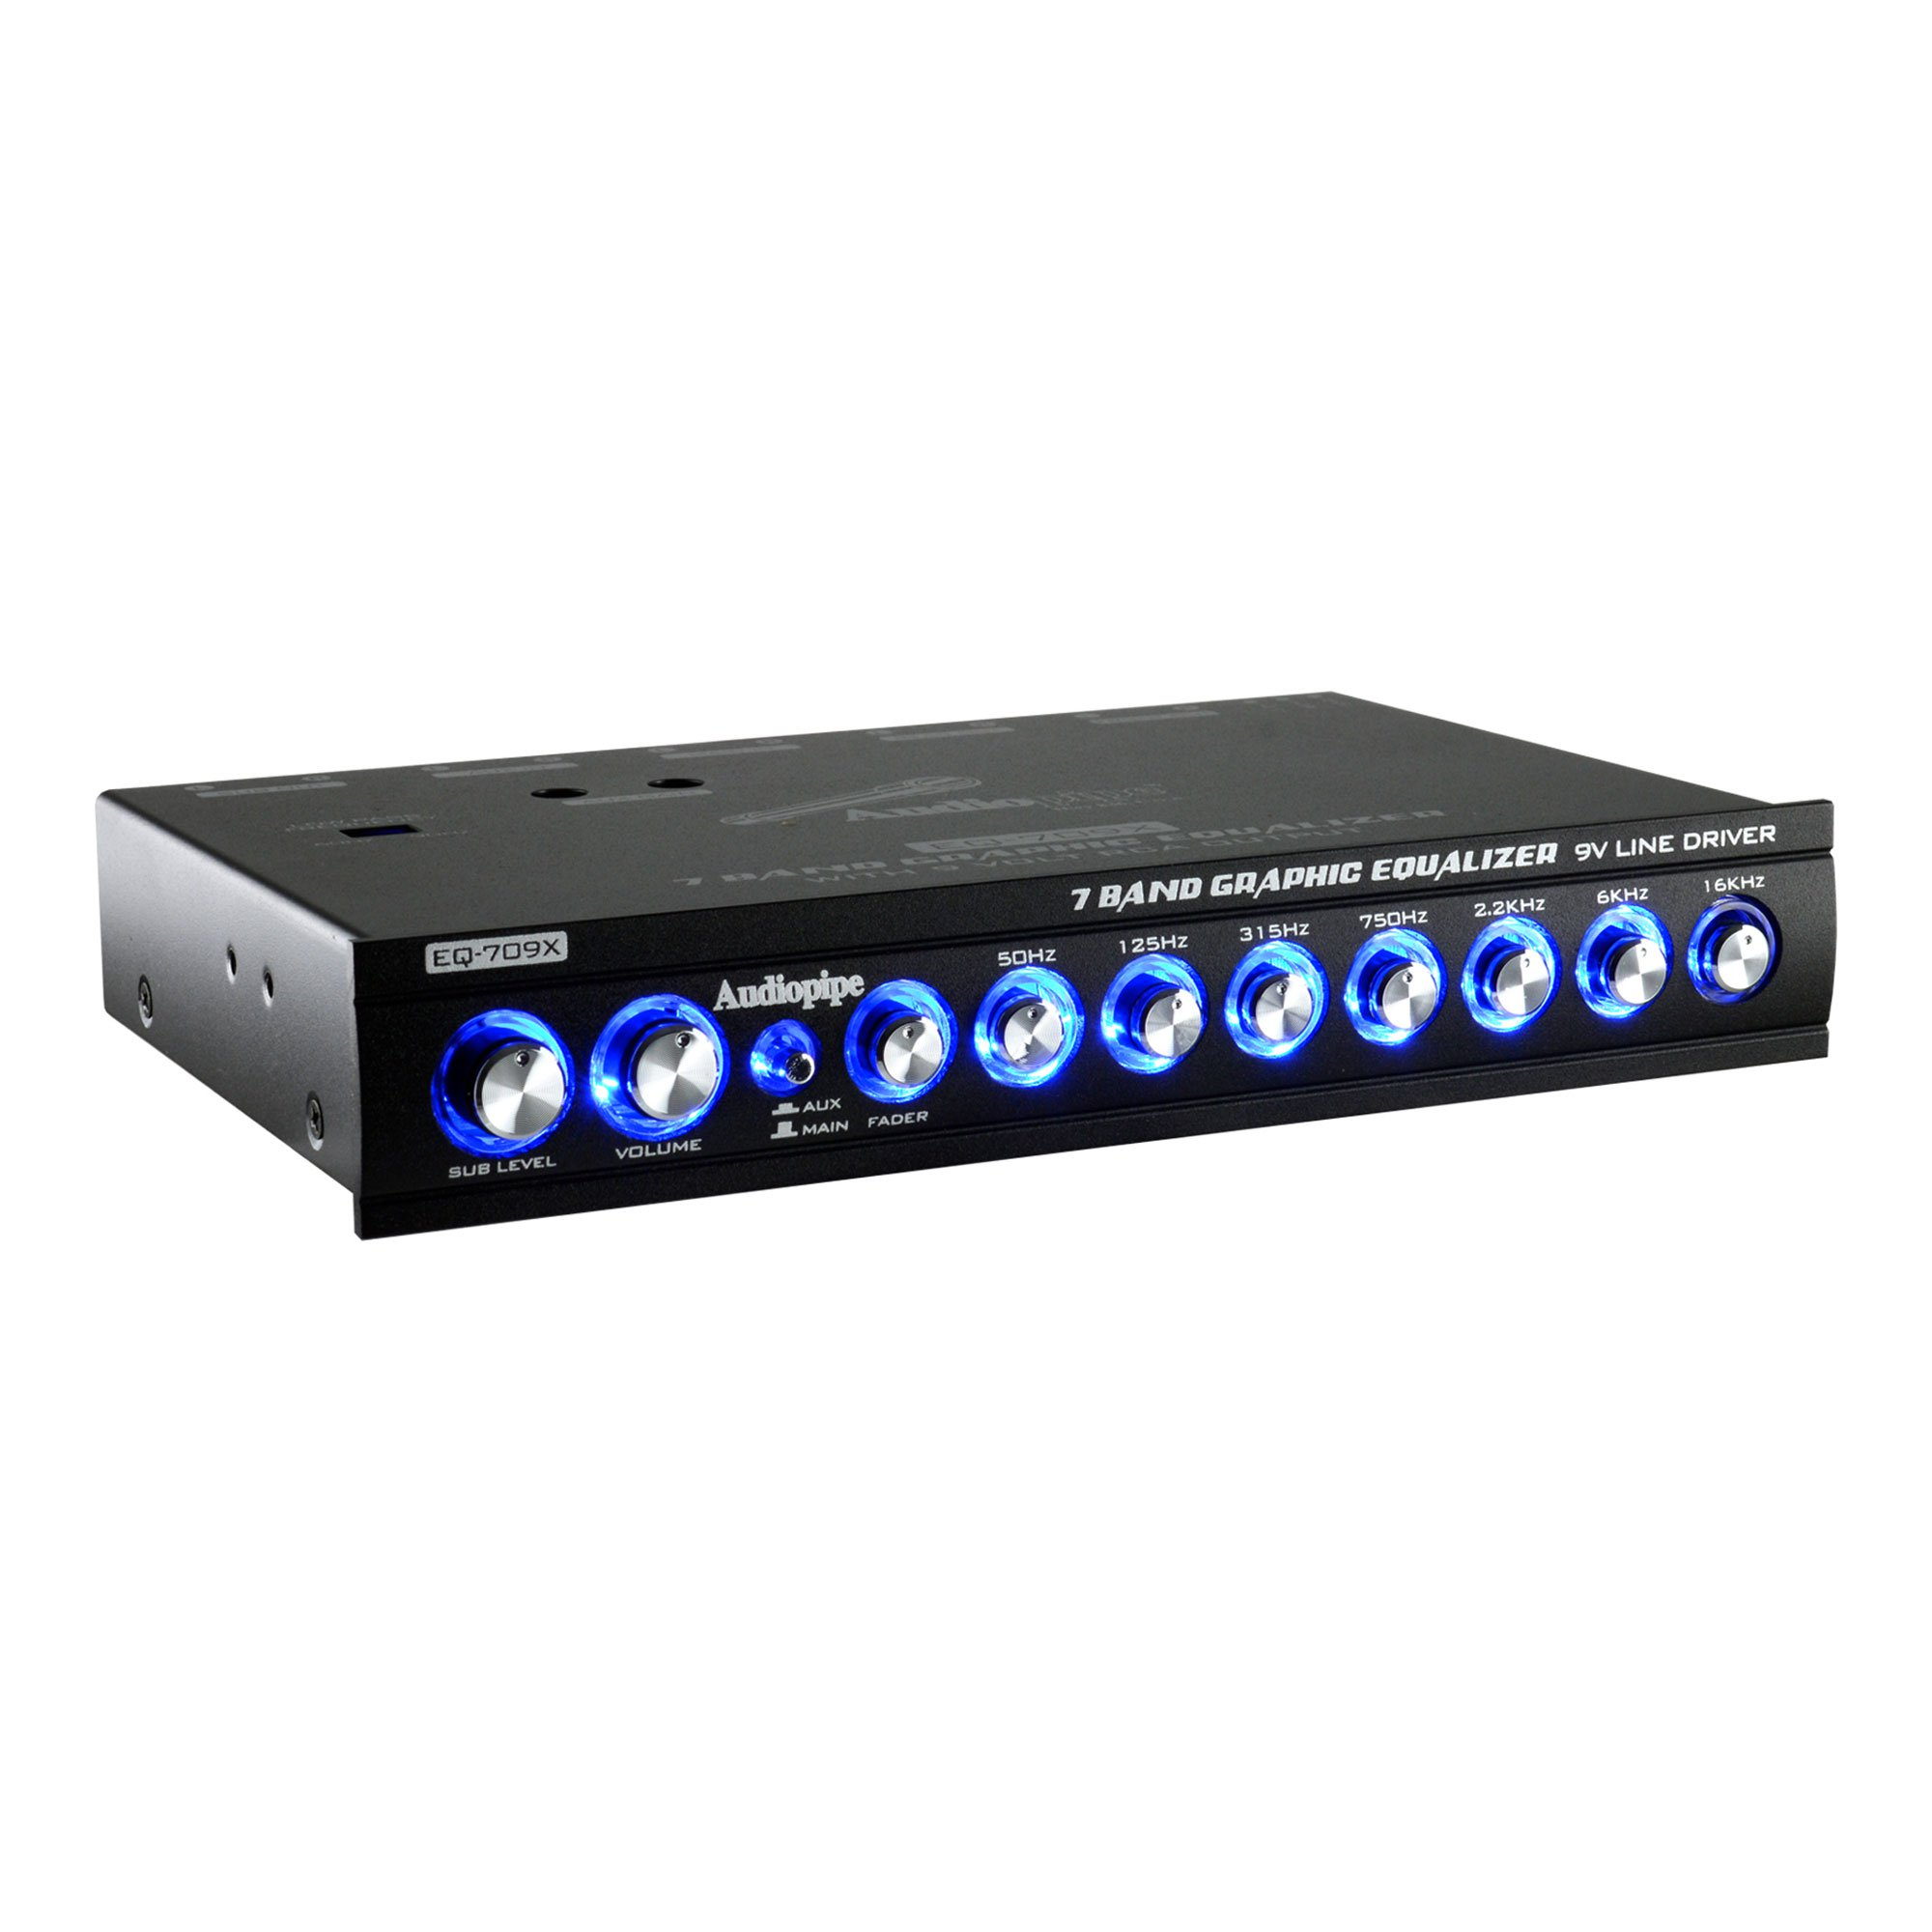 Audiopipe EQ-909X 9 Band-9V Line Driver Graphic Equalizer